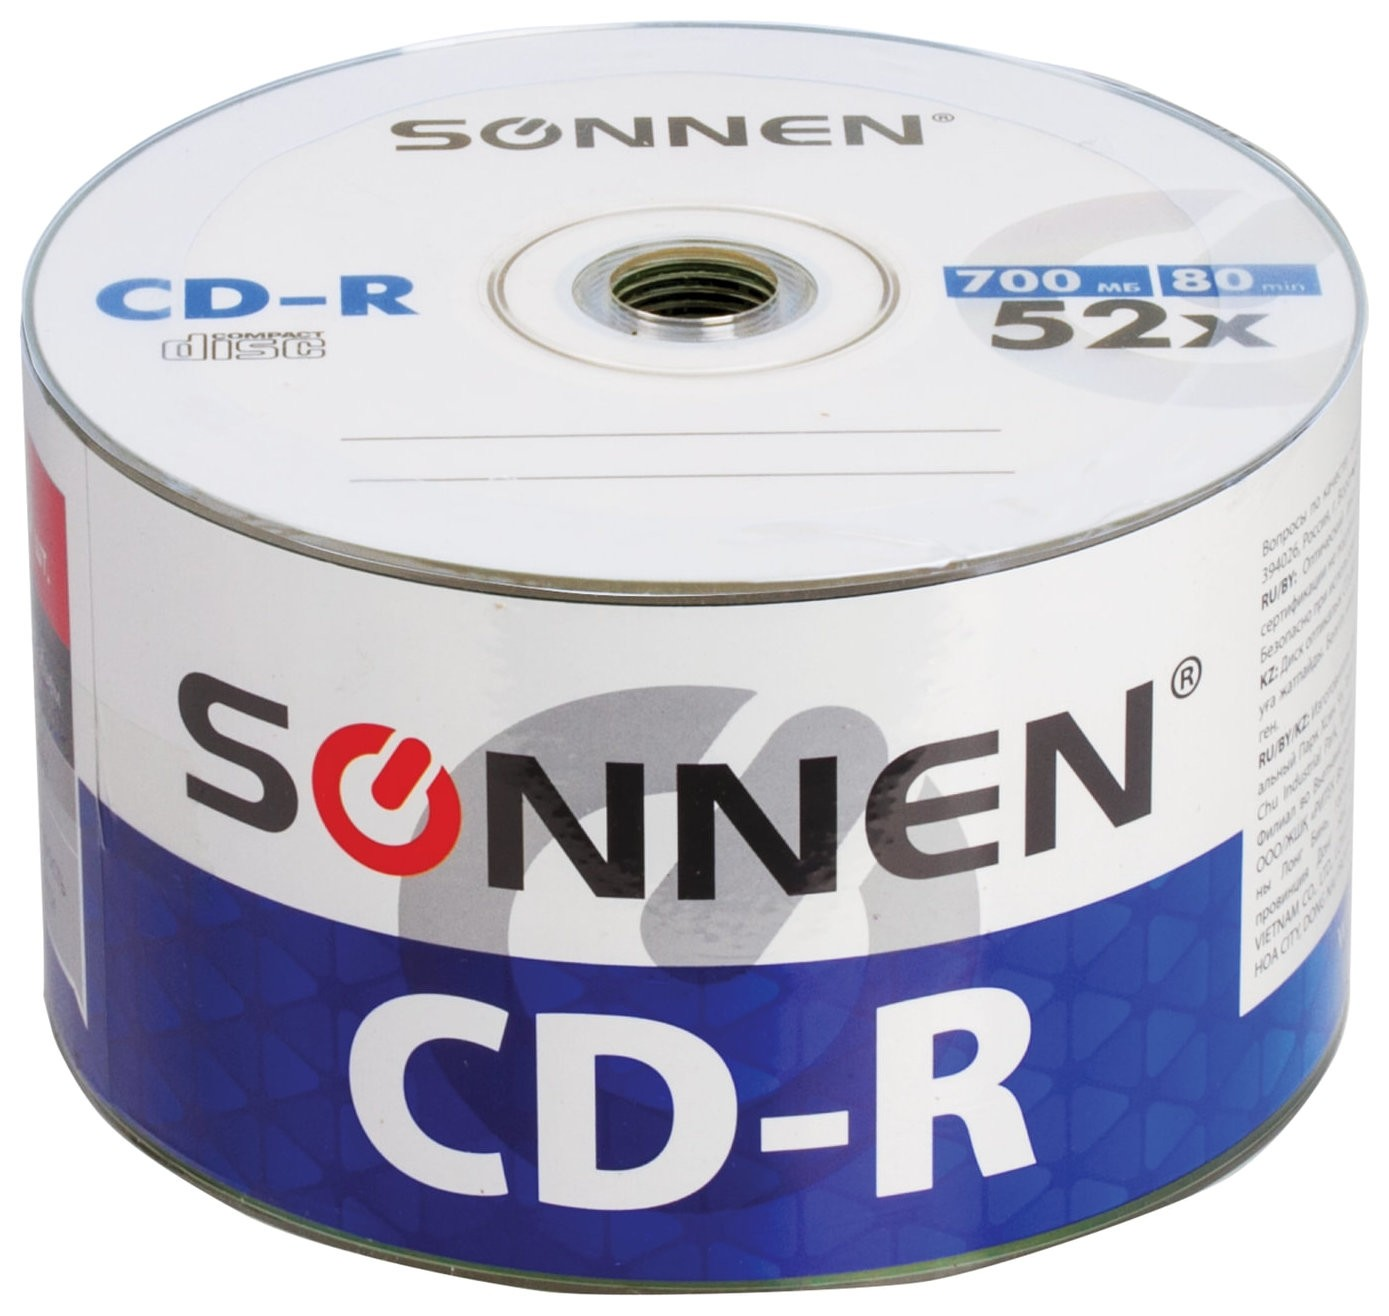 Диски Cd-r Sonnen 700 Mb 52x Bulk, комплект 50 шт.  Sonnen